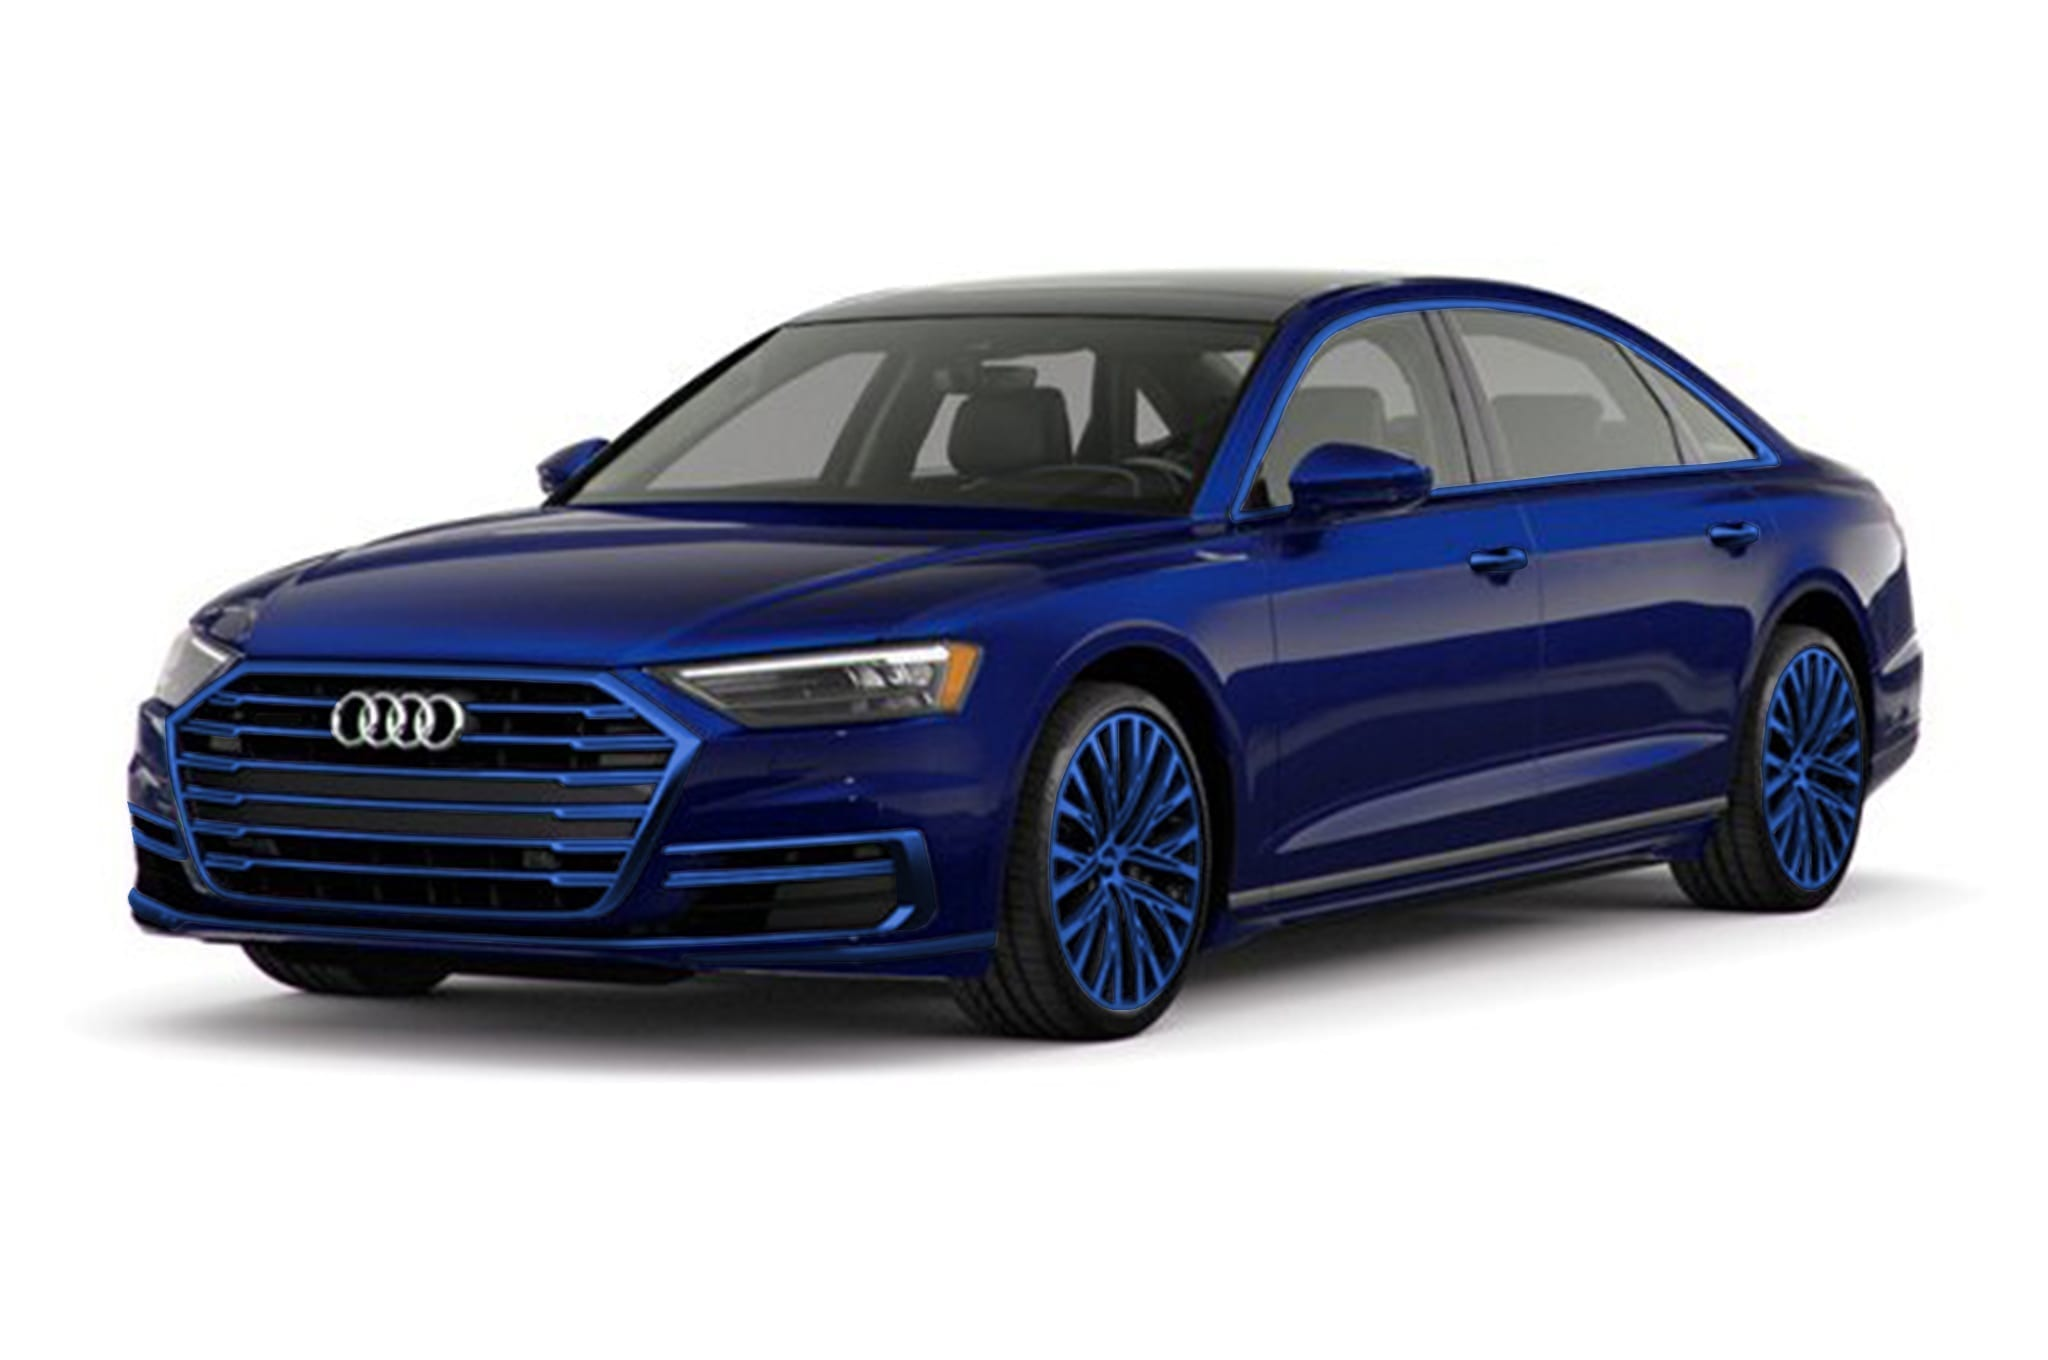 2018 Audi A8 with Same Body Accents and Wheels